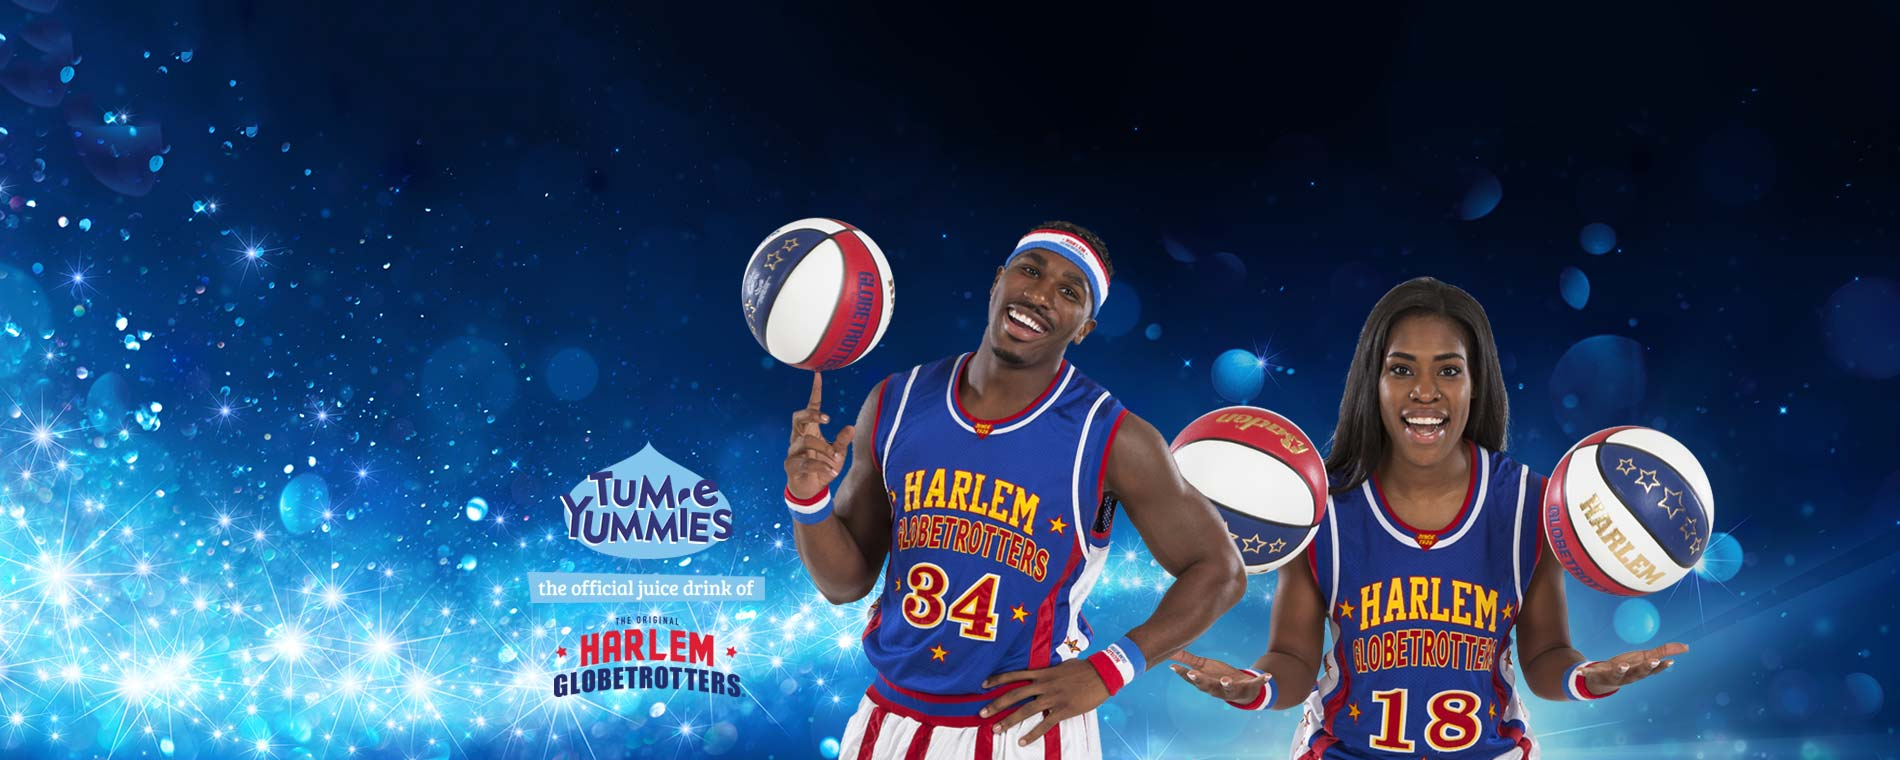 The Harlem Globetrotters Experience Presented by TUM-e YUMMIES